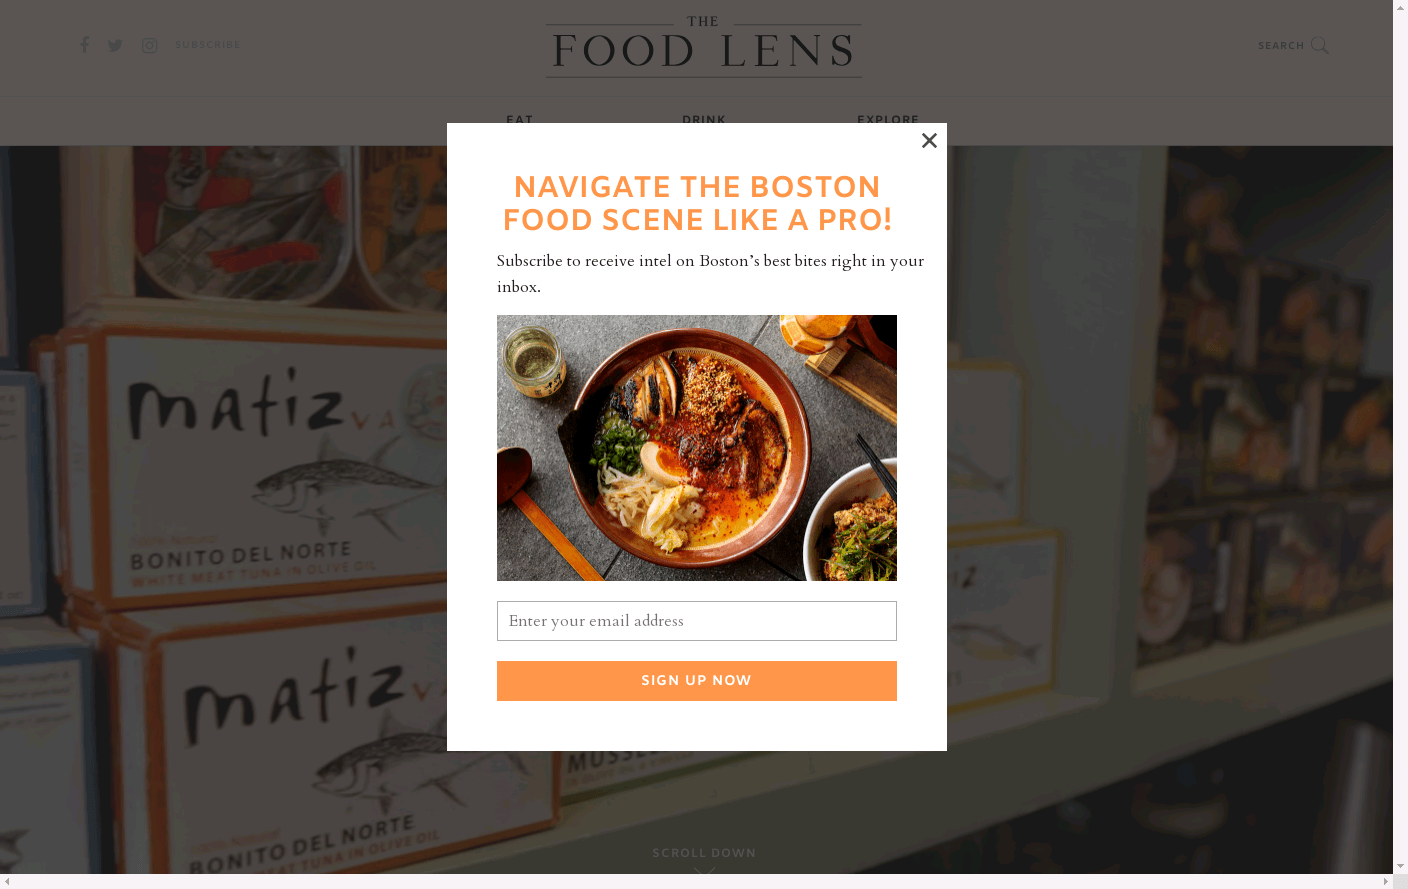 The Food Lens